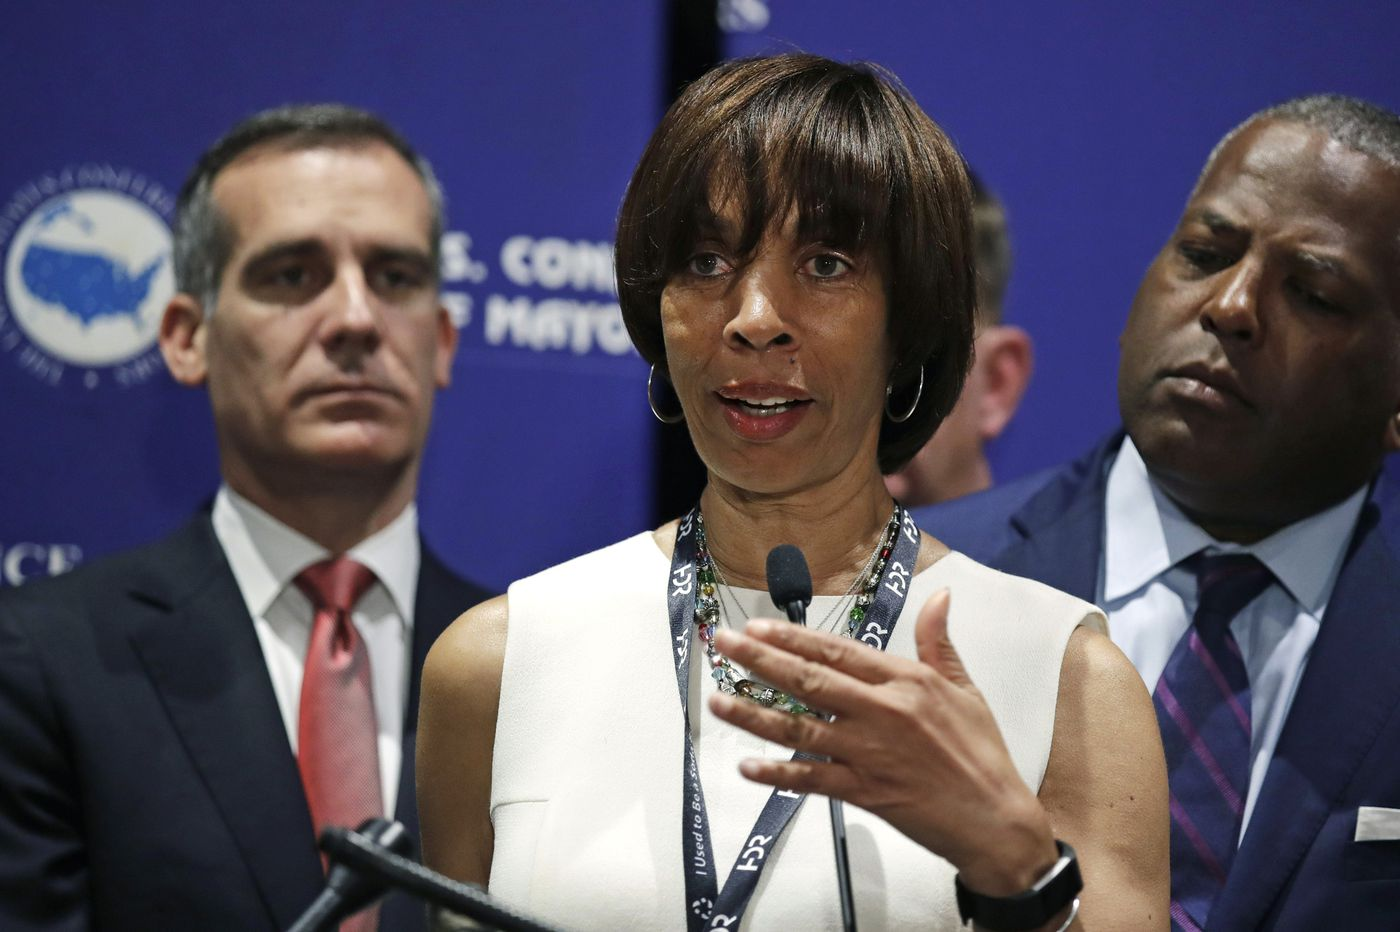 Baltimore Mayor Pugh Resigns, Sunk By Children's Book Scheme